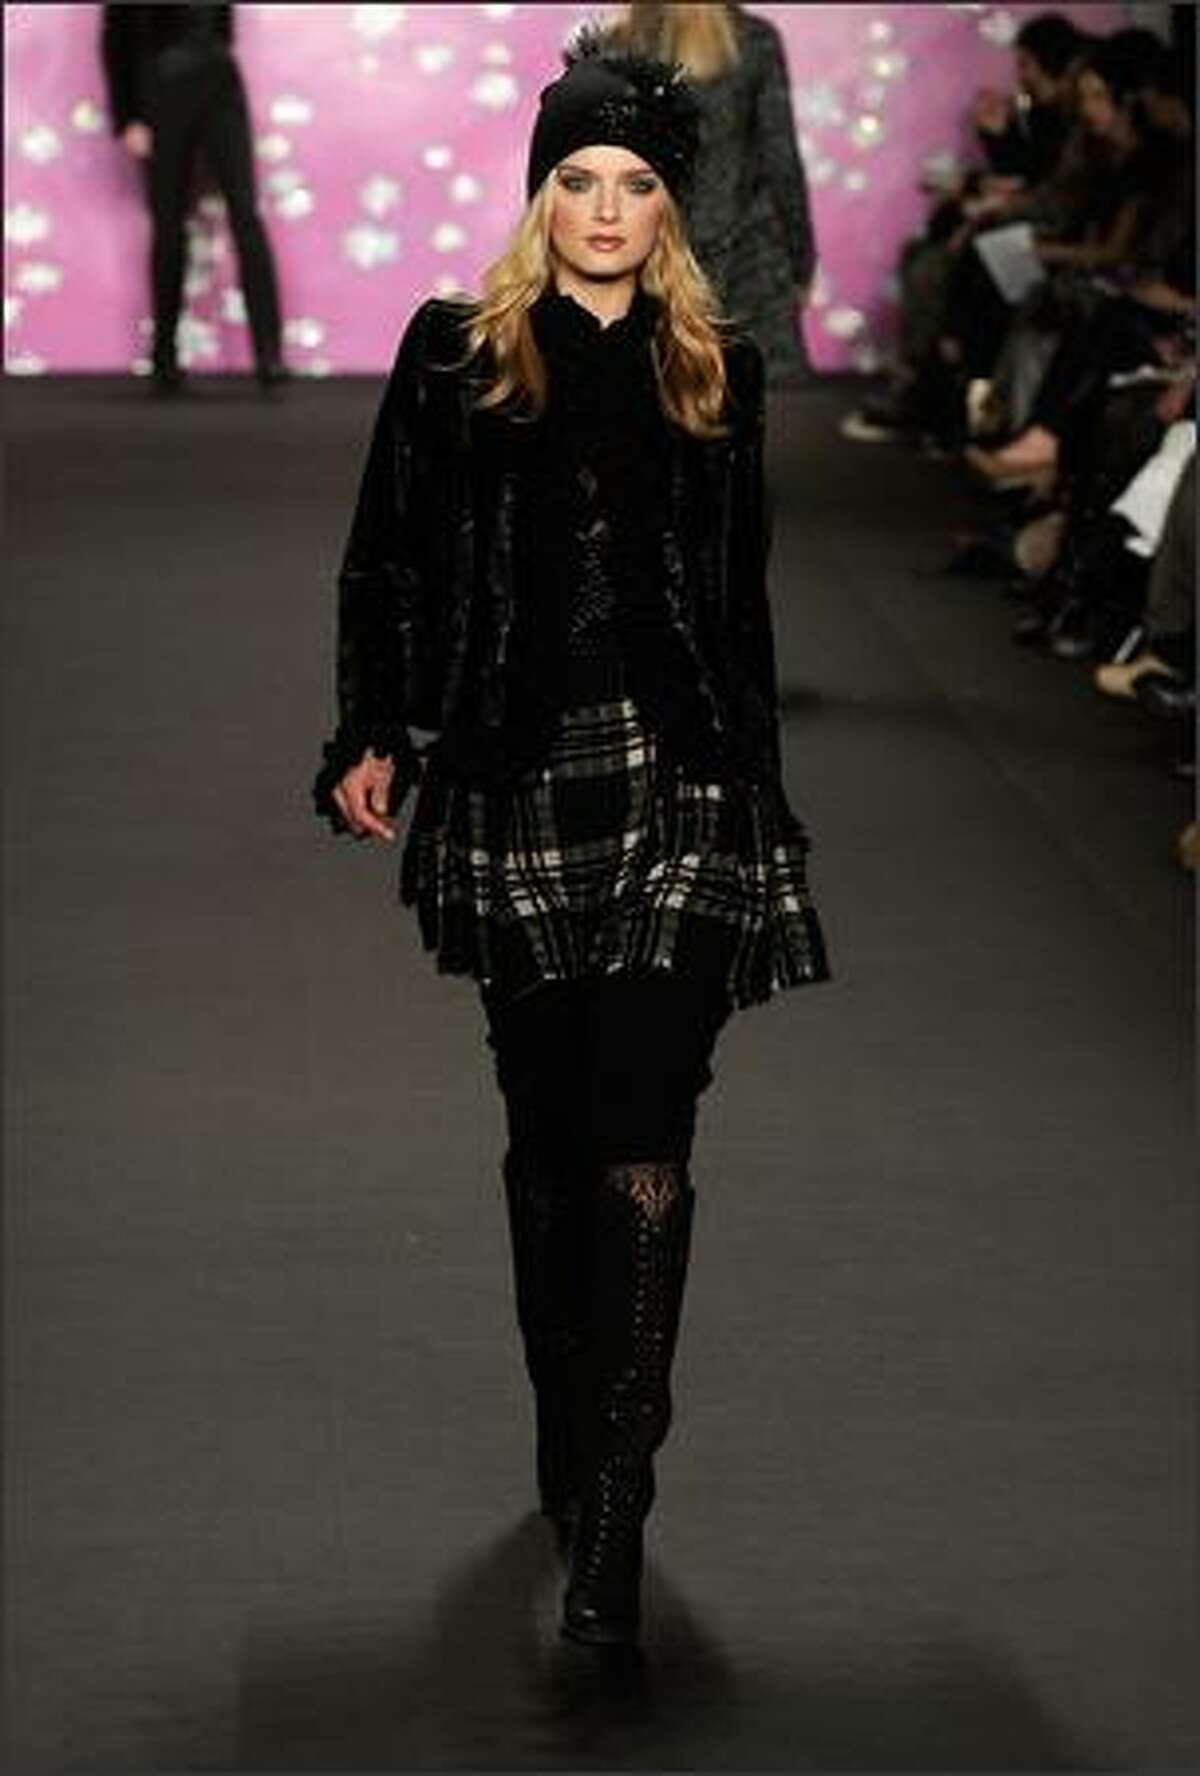 A model walks the runway at the Anna Sui Fall 2009 fashion show during Mercedes-Benz Fashion Week in the Tent at New York's Bryant Park on Wednesday, Feb. 18, 2009.